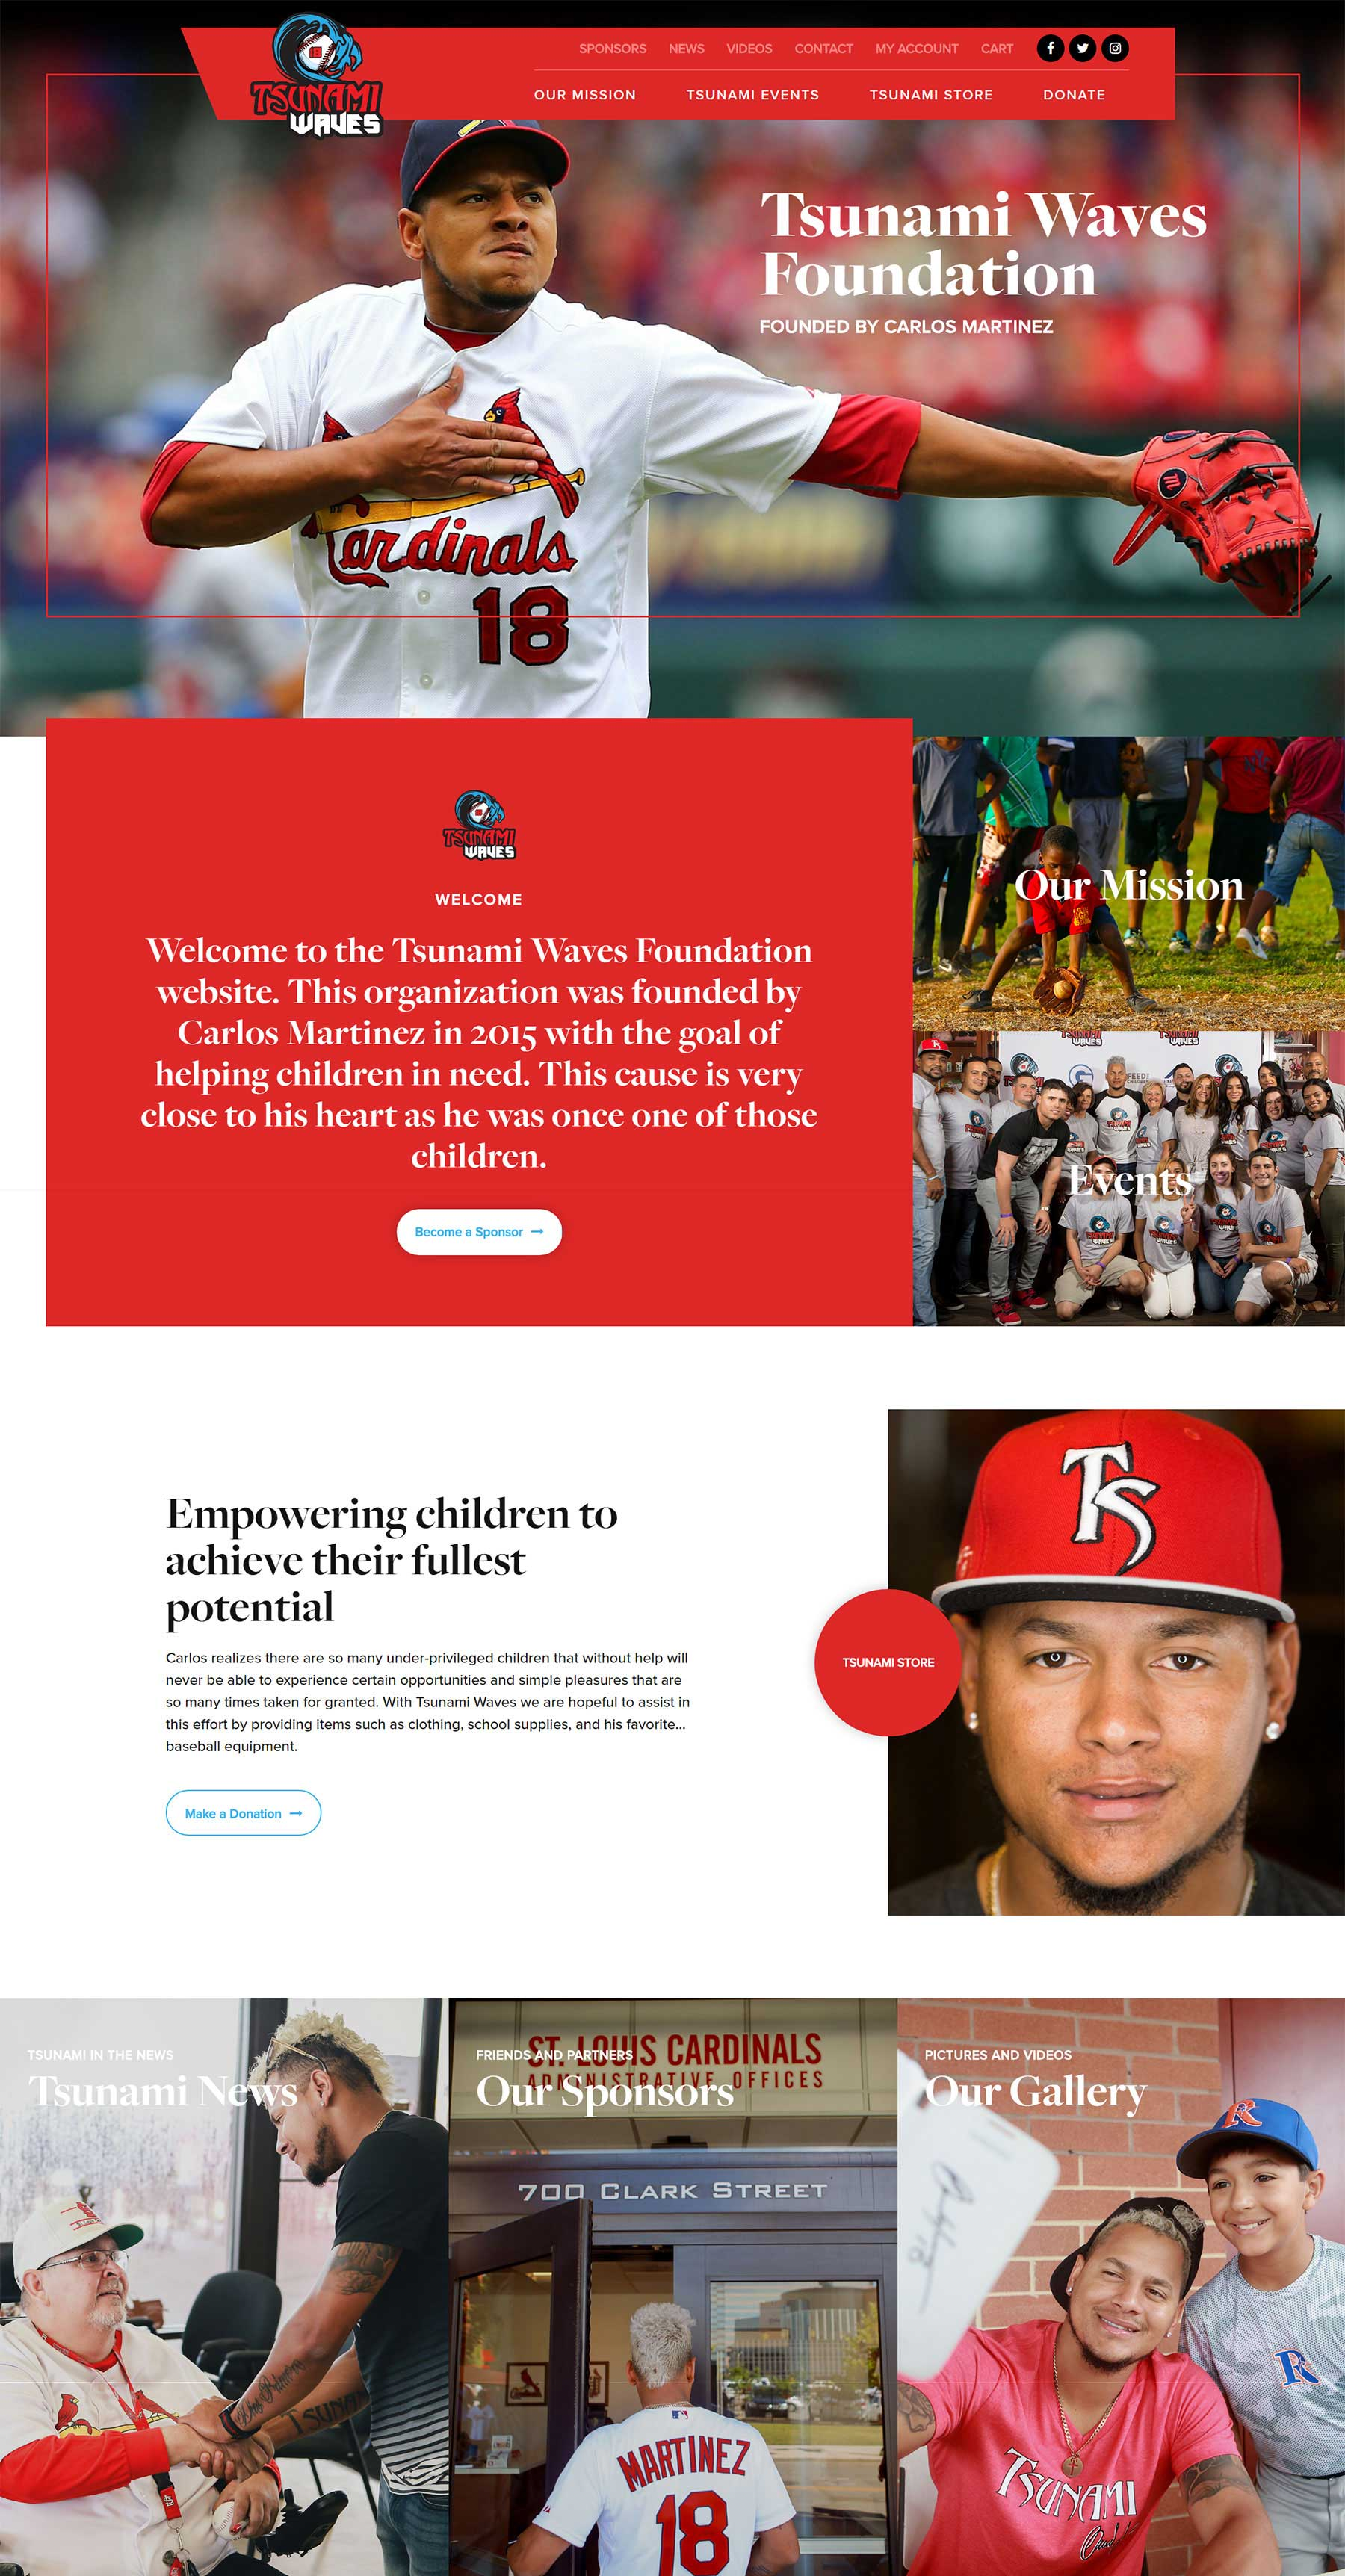 Best sports company website designers St. Louis